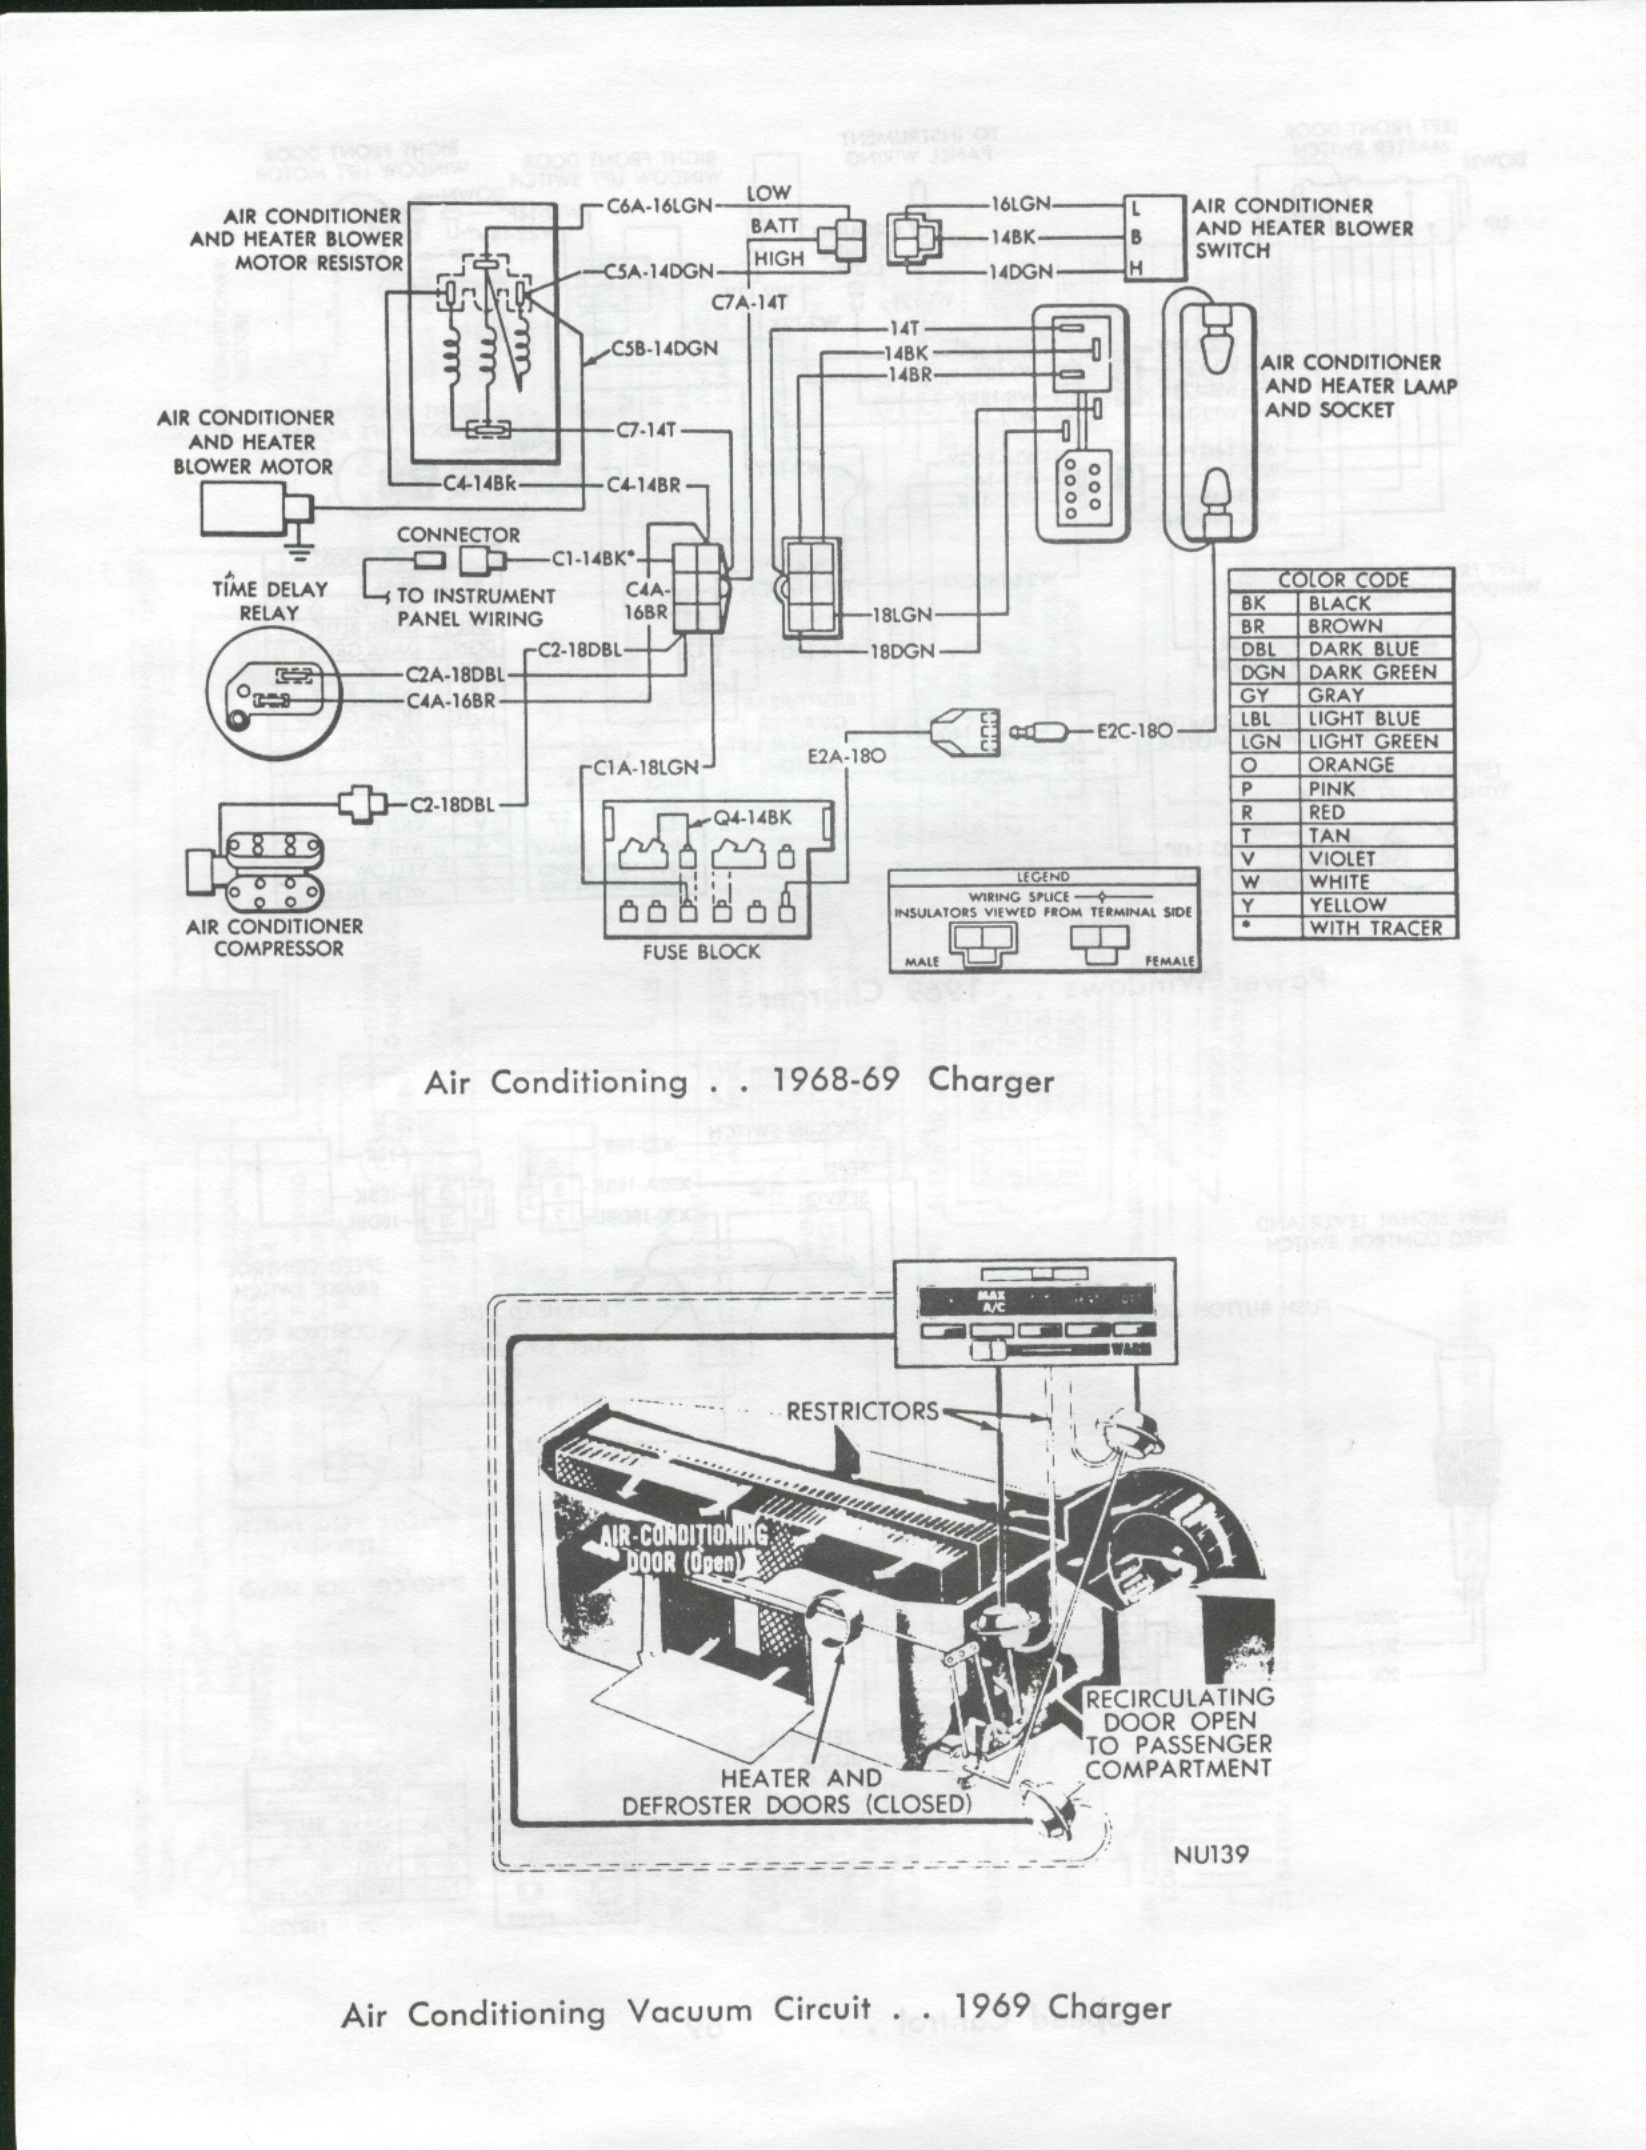 Dodge Charger Hvac Diagram, Dodge, Free Engine Image For